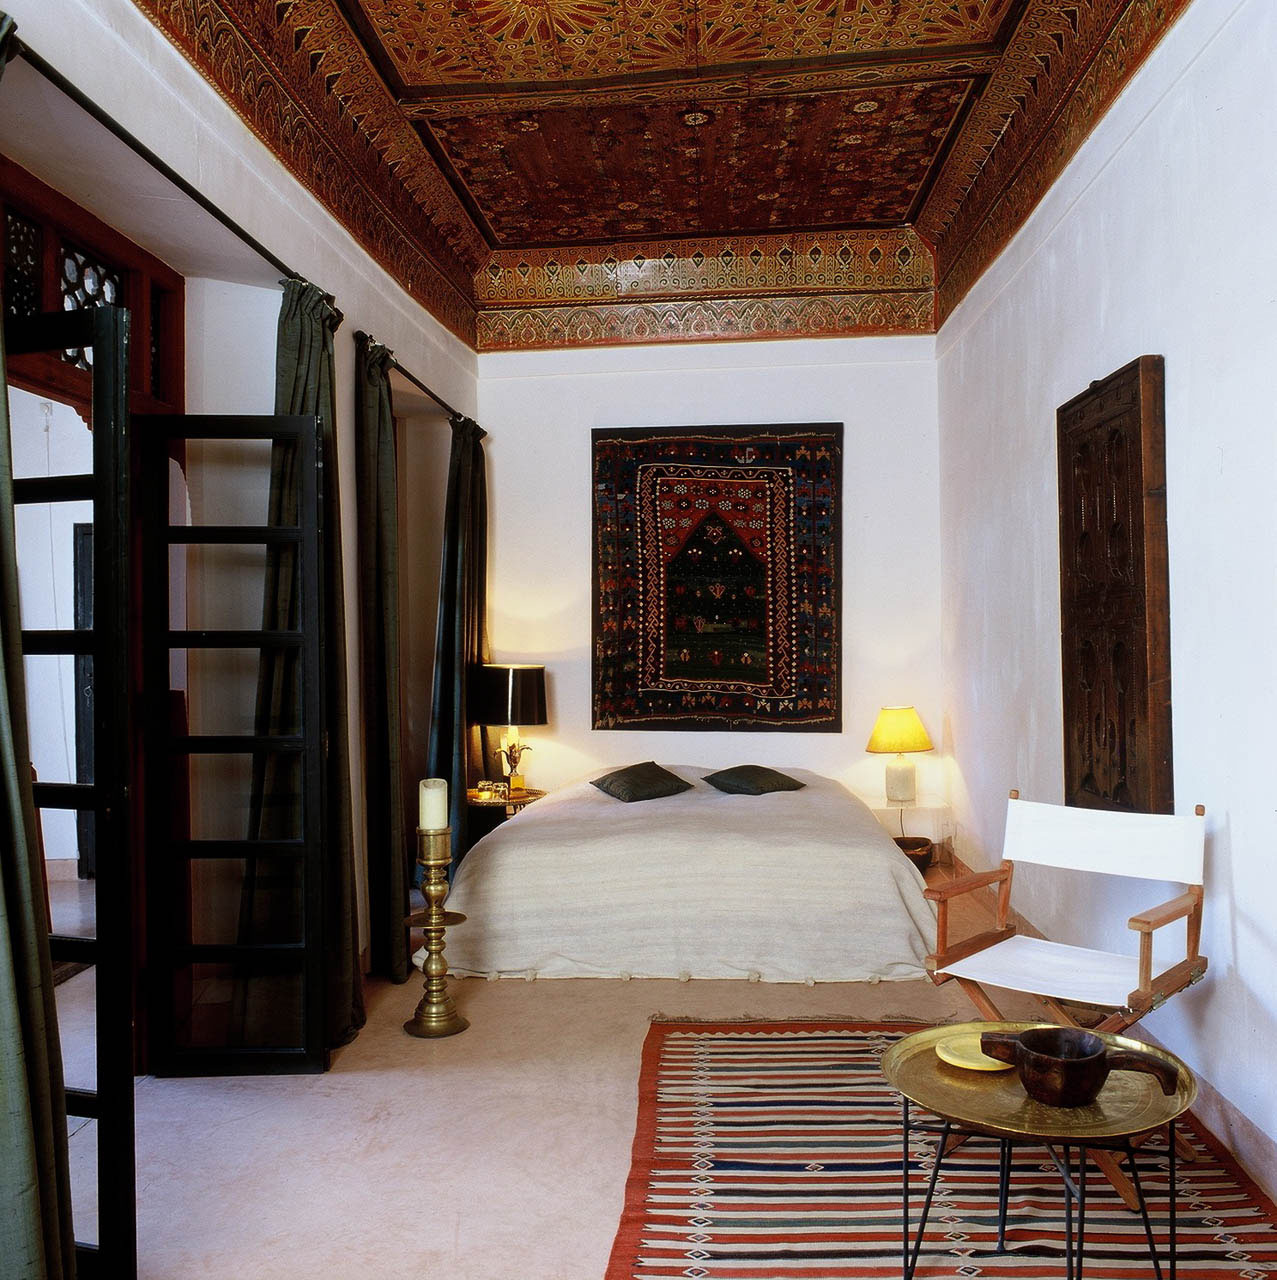     The bedroom with the magnificent ceiling